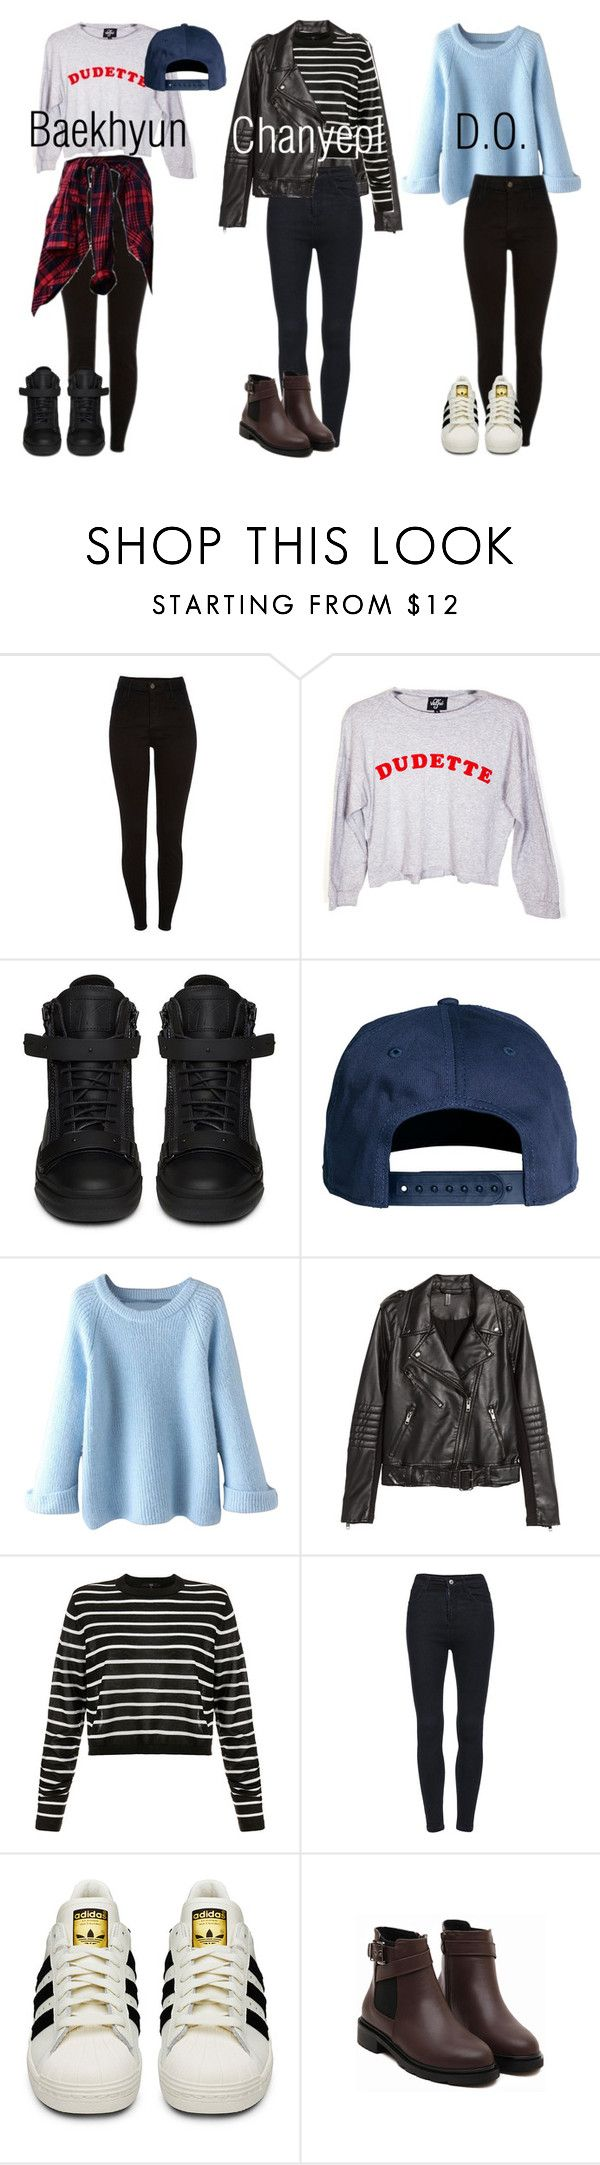 """""""EXO Inspired Outfits Pt.2"""" by fangirlkaly8102 ❤ liked on Polyvore featuring Valfré, Giuseppe Zanotti, H&M, TIBI, adidas, kpop and EXO"""